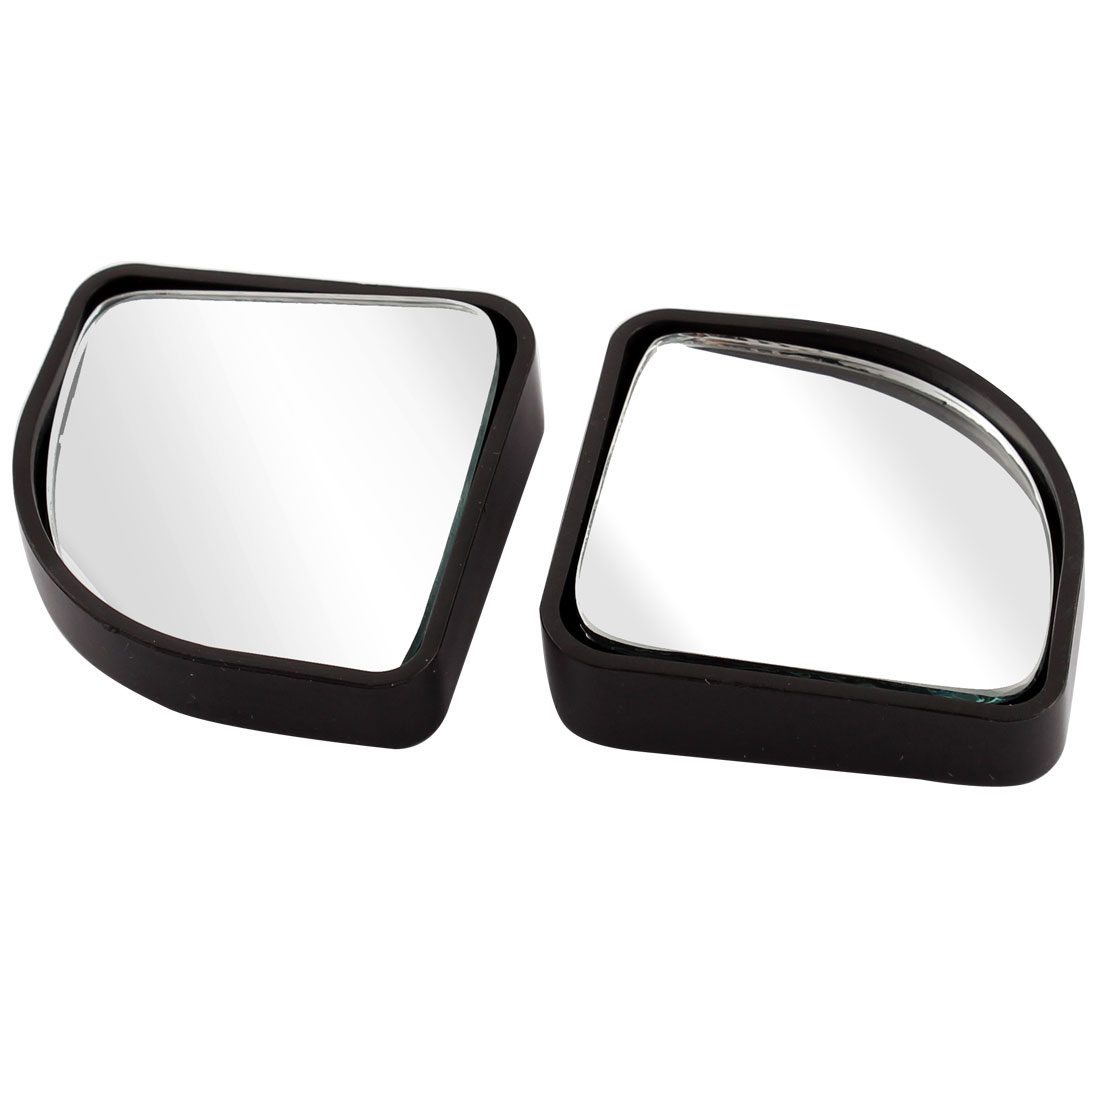 "Auto Car 2"" x 1.8"" Stick-on Blind Spot Mirror Black 2 Pcs"